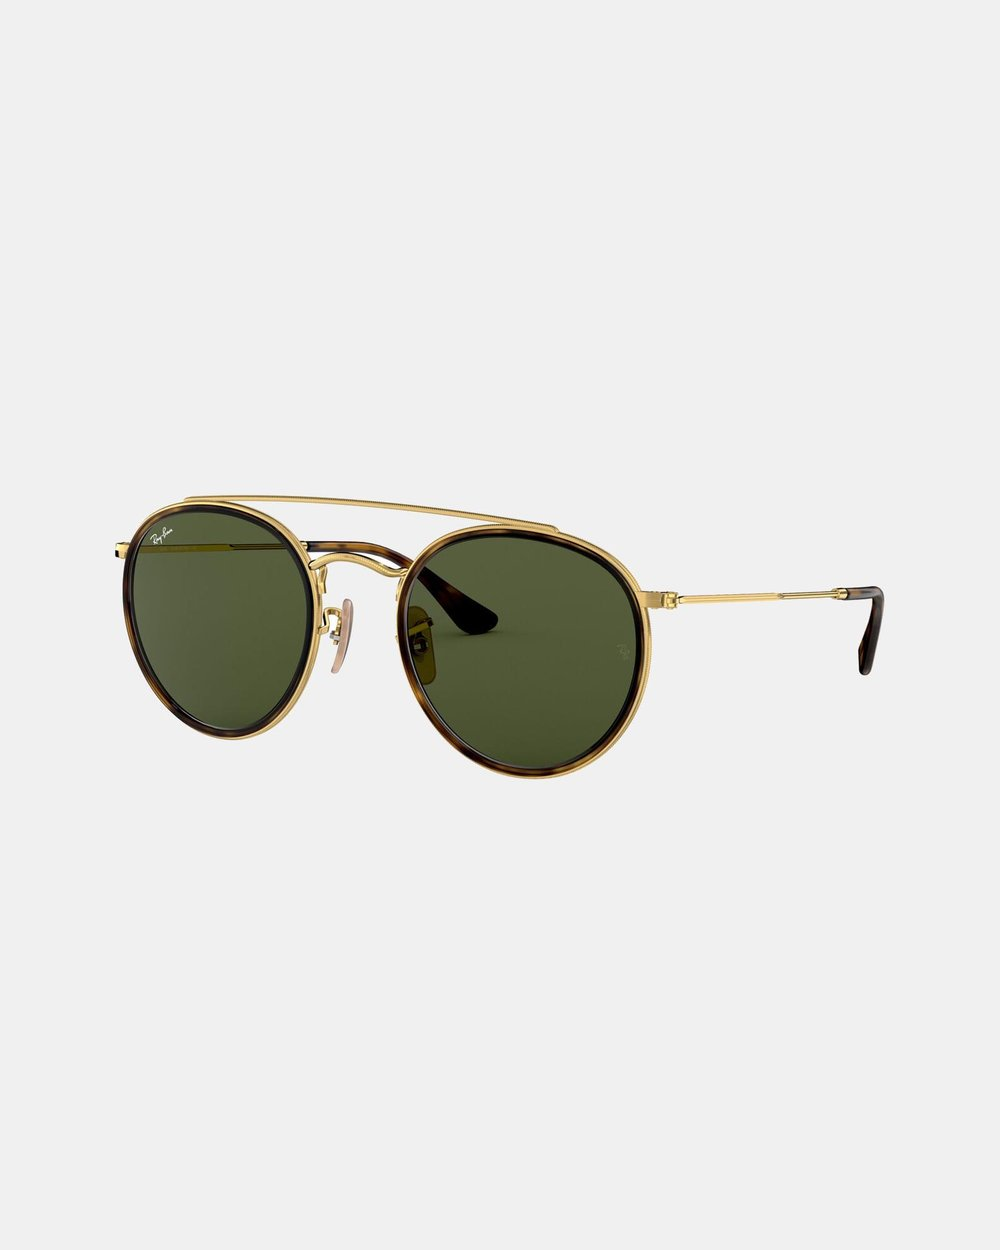 cc1d0d76c2 Round Double-Bridge by Ray-Ban Online